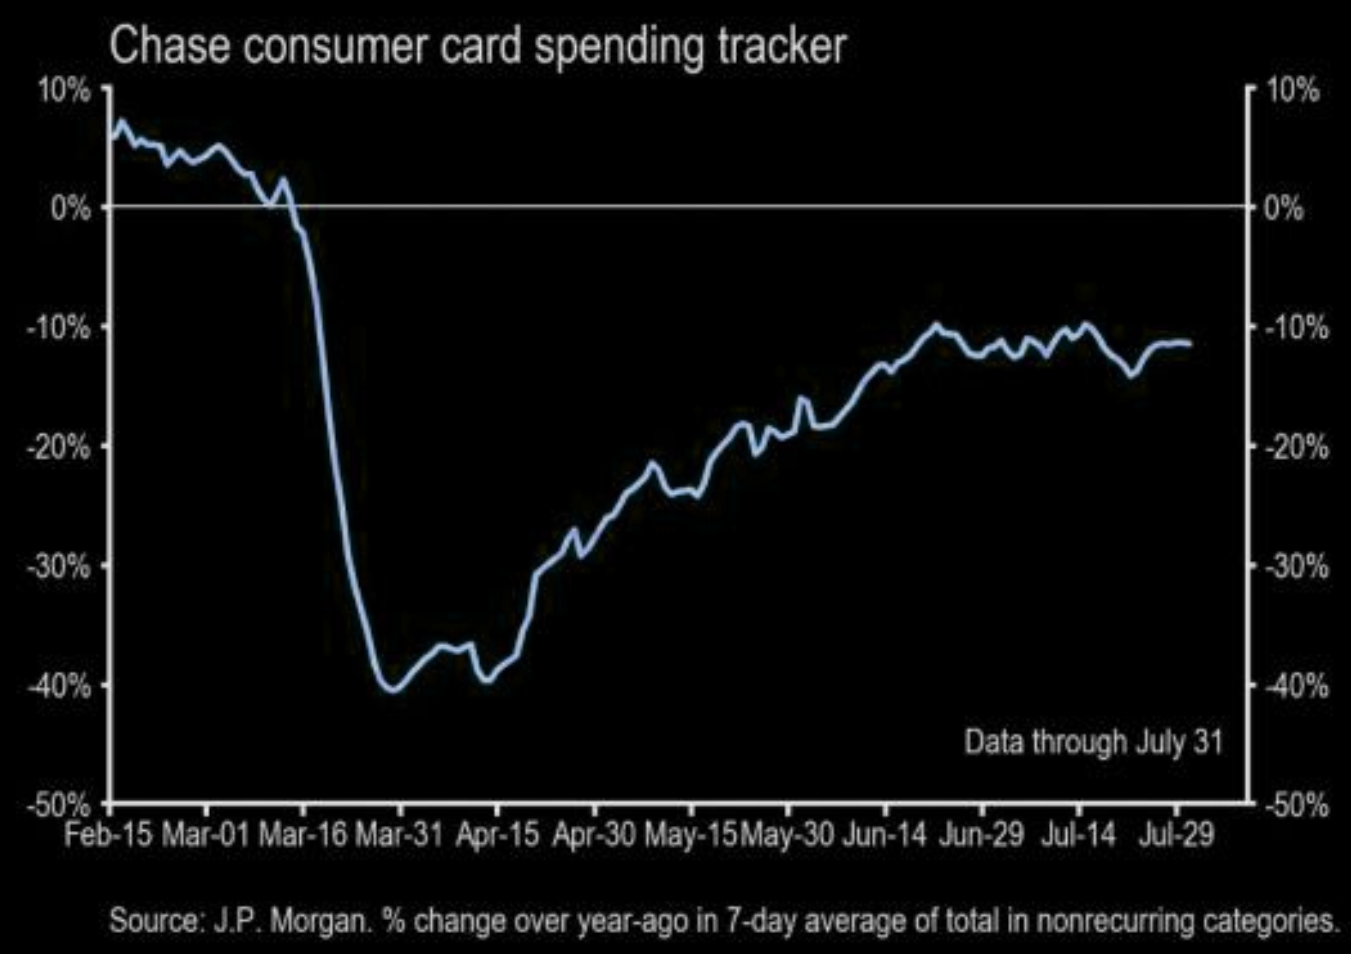 Consumer card spending tracker: stuck at -10%